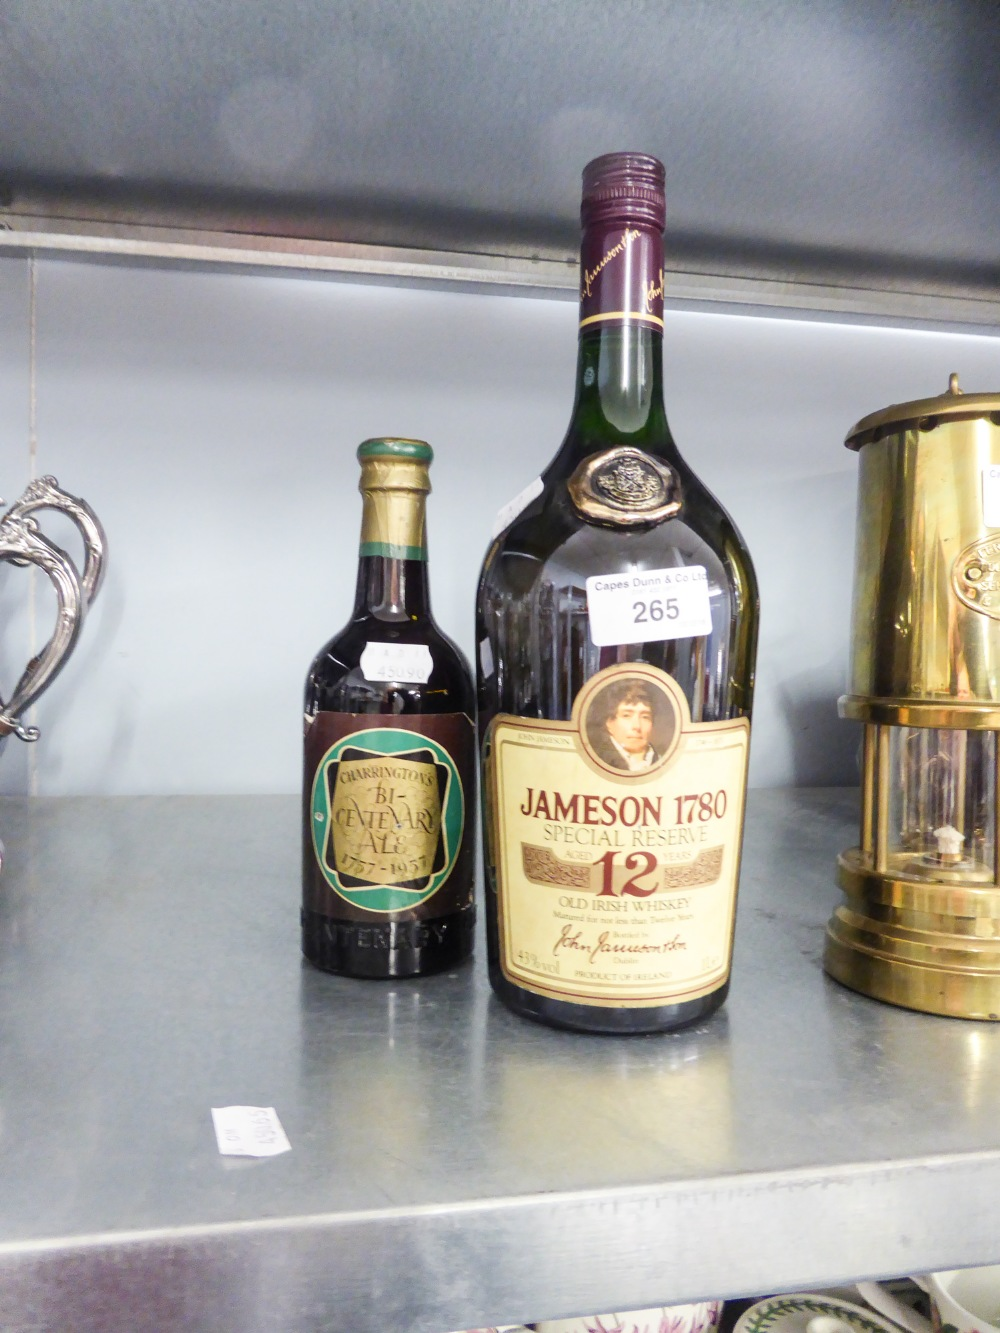 Lot 265 - A BOTTLE OF JAMESON 1780 SPECIAL RESERVE 12 YEAR WHISKEY AND A BOTTLE OF CHARRINGTON'S BI-